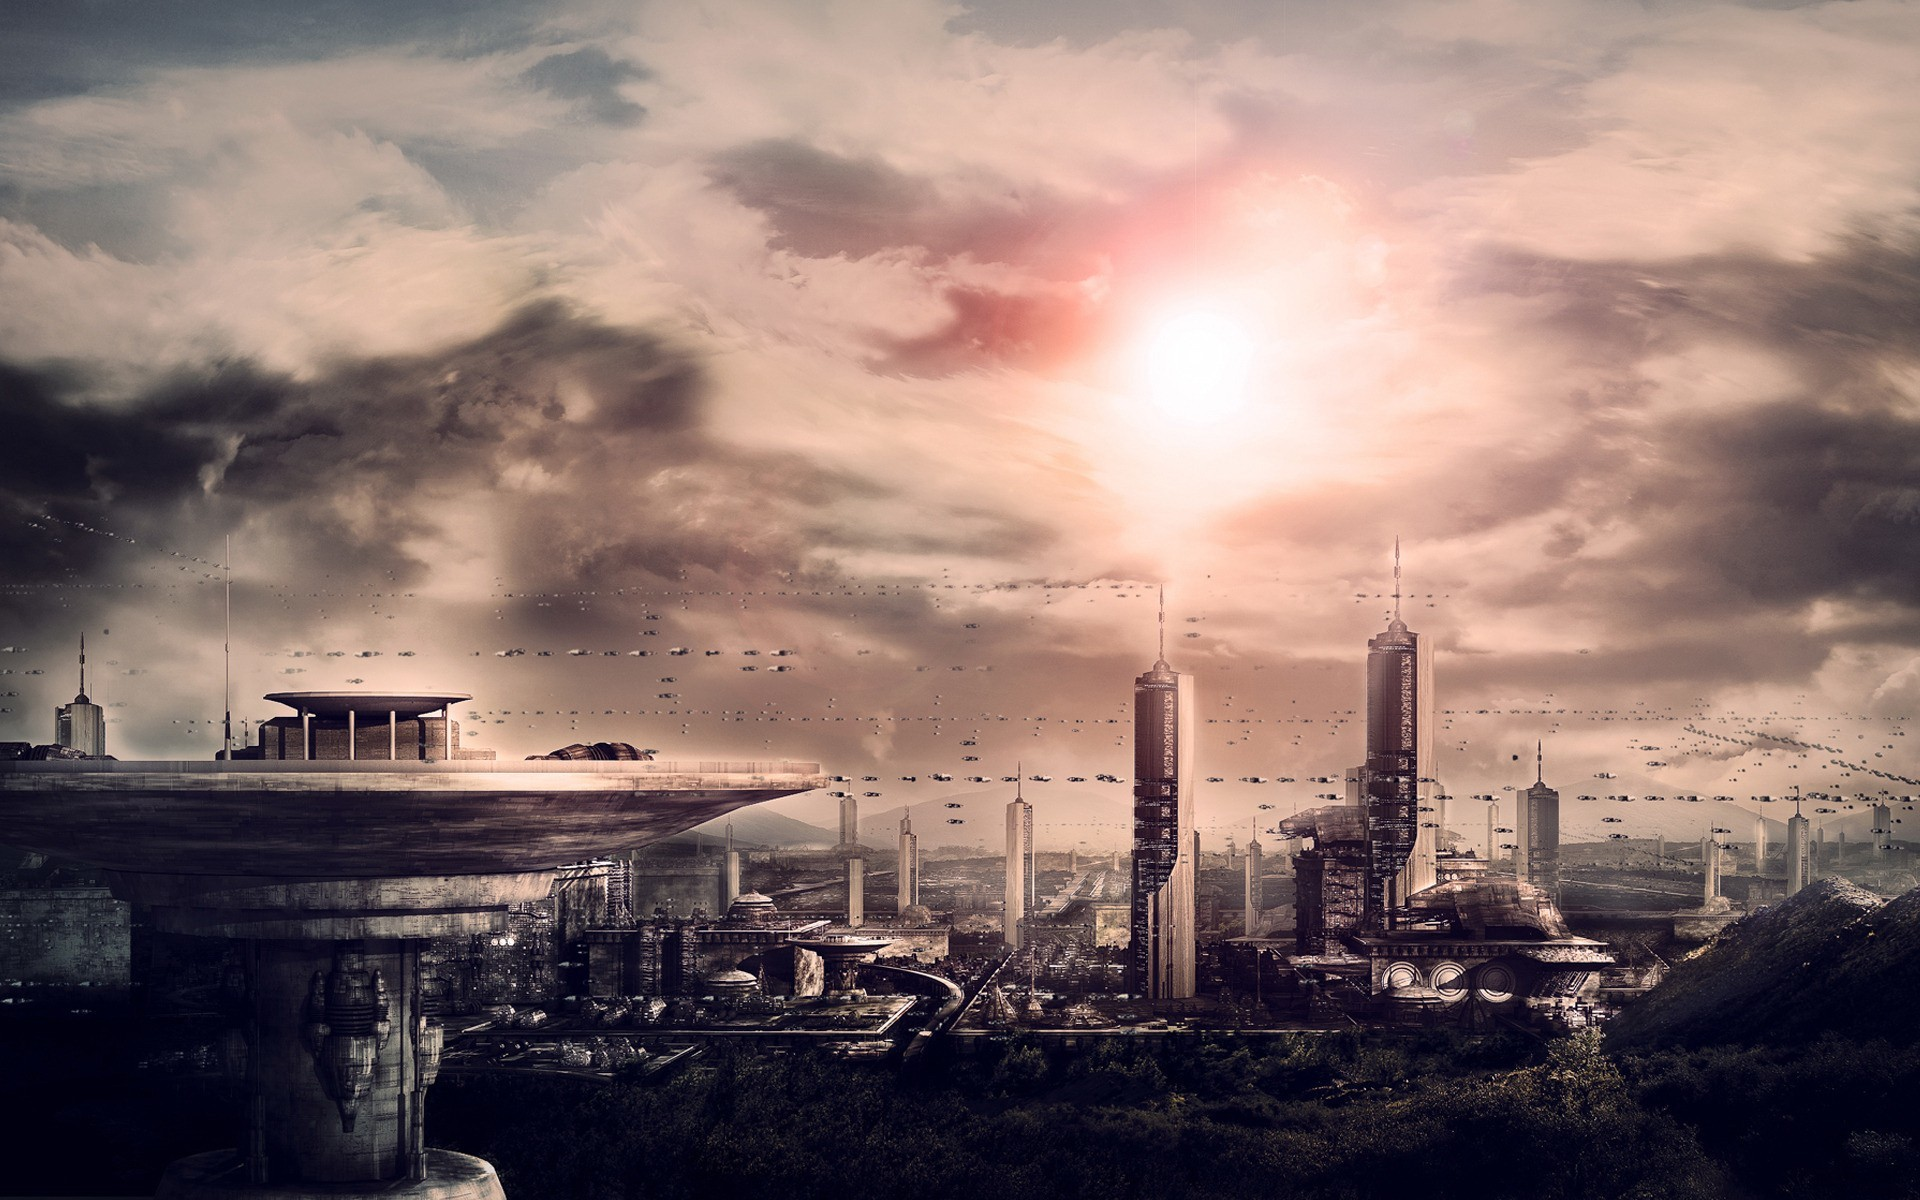 cityscapes science fiction futuristic HD Wallpaper